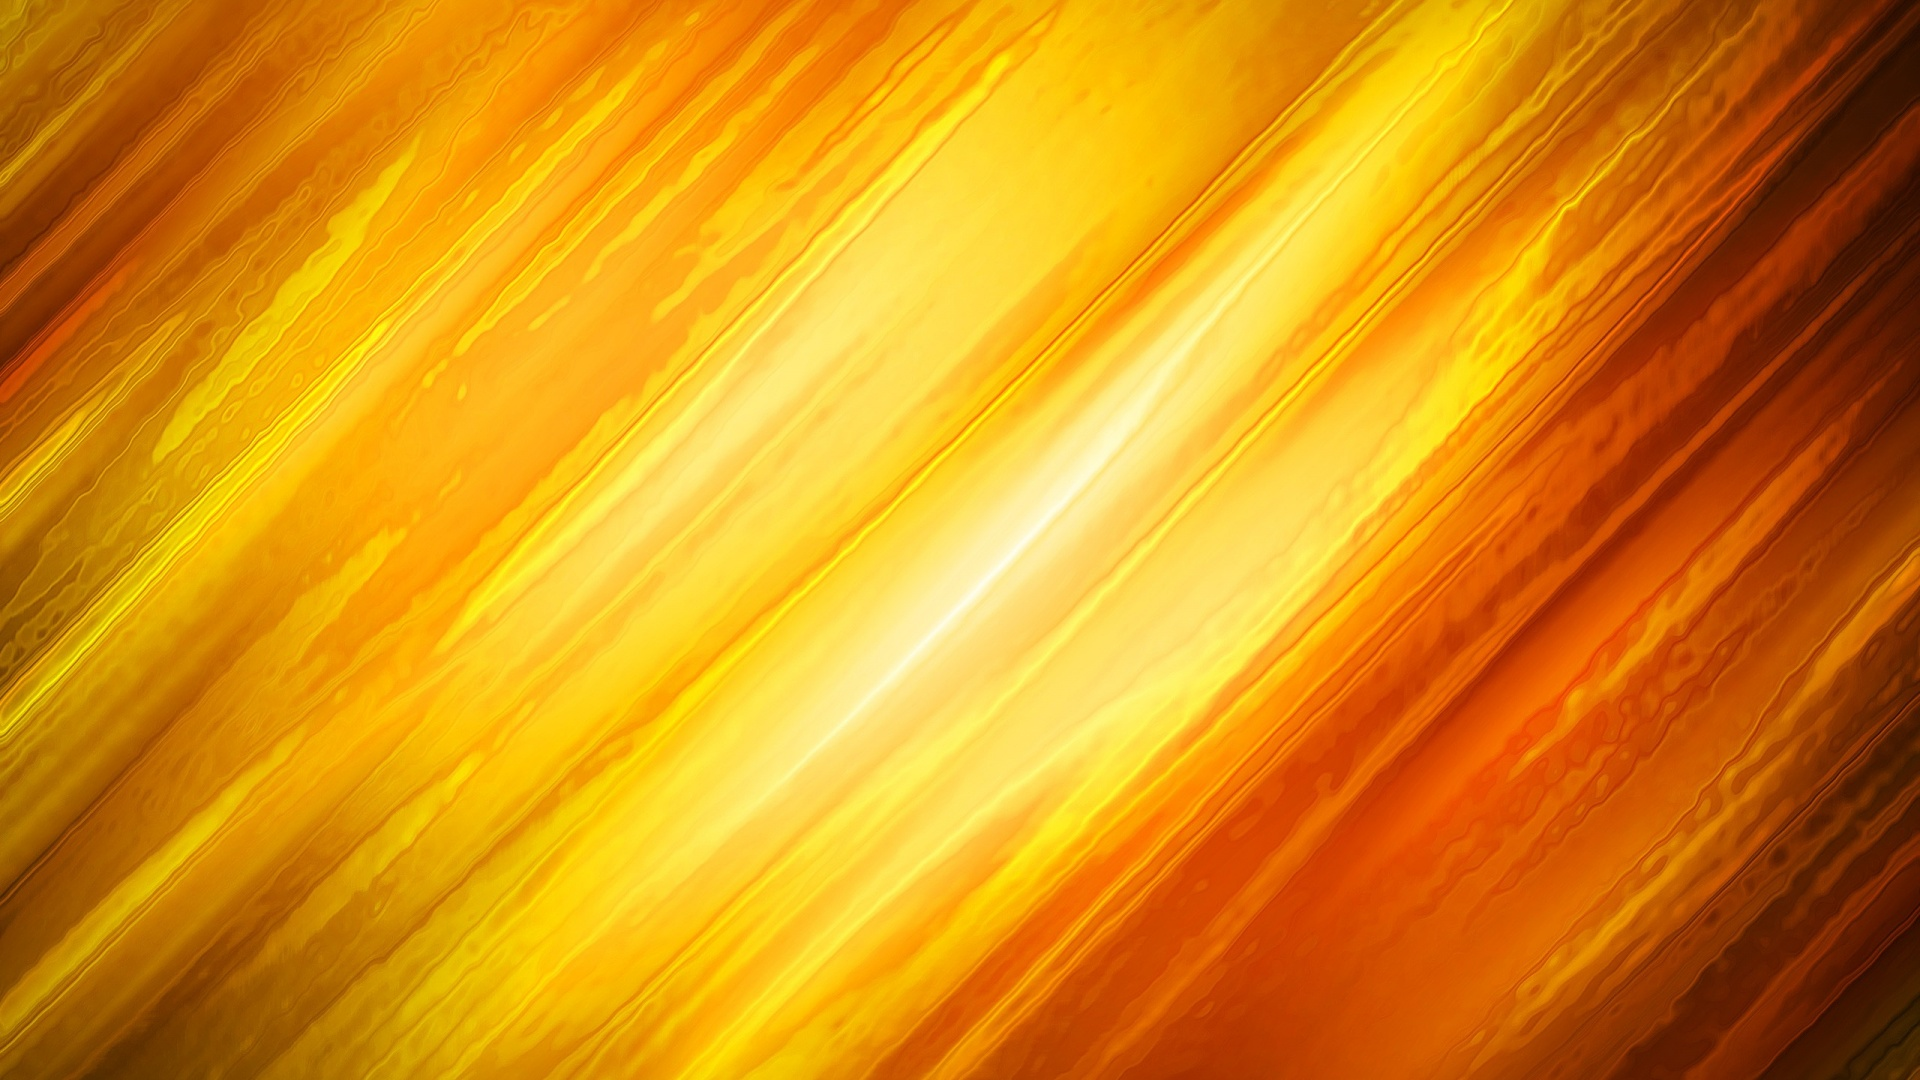 Abstract Yellow and Orange Background desktop PC and Mac wallpaper 1920x1080